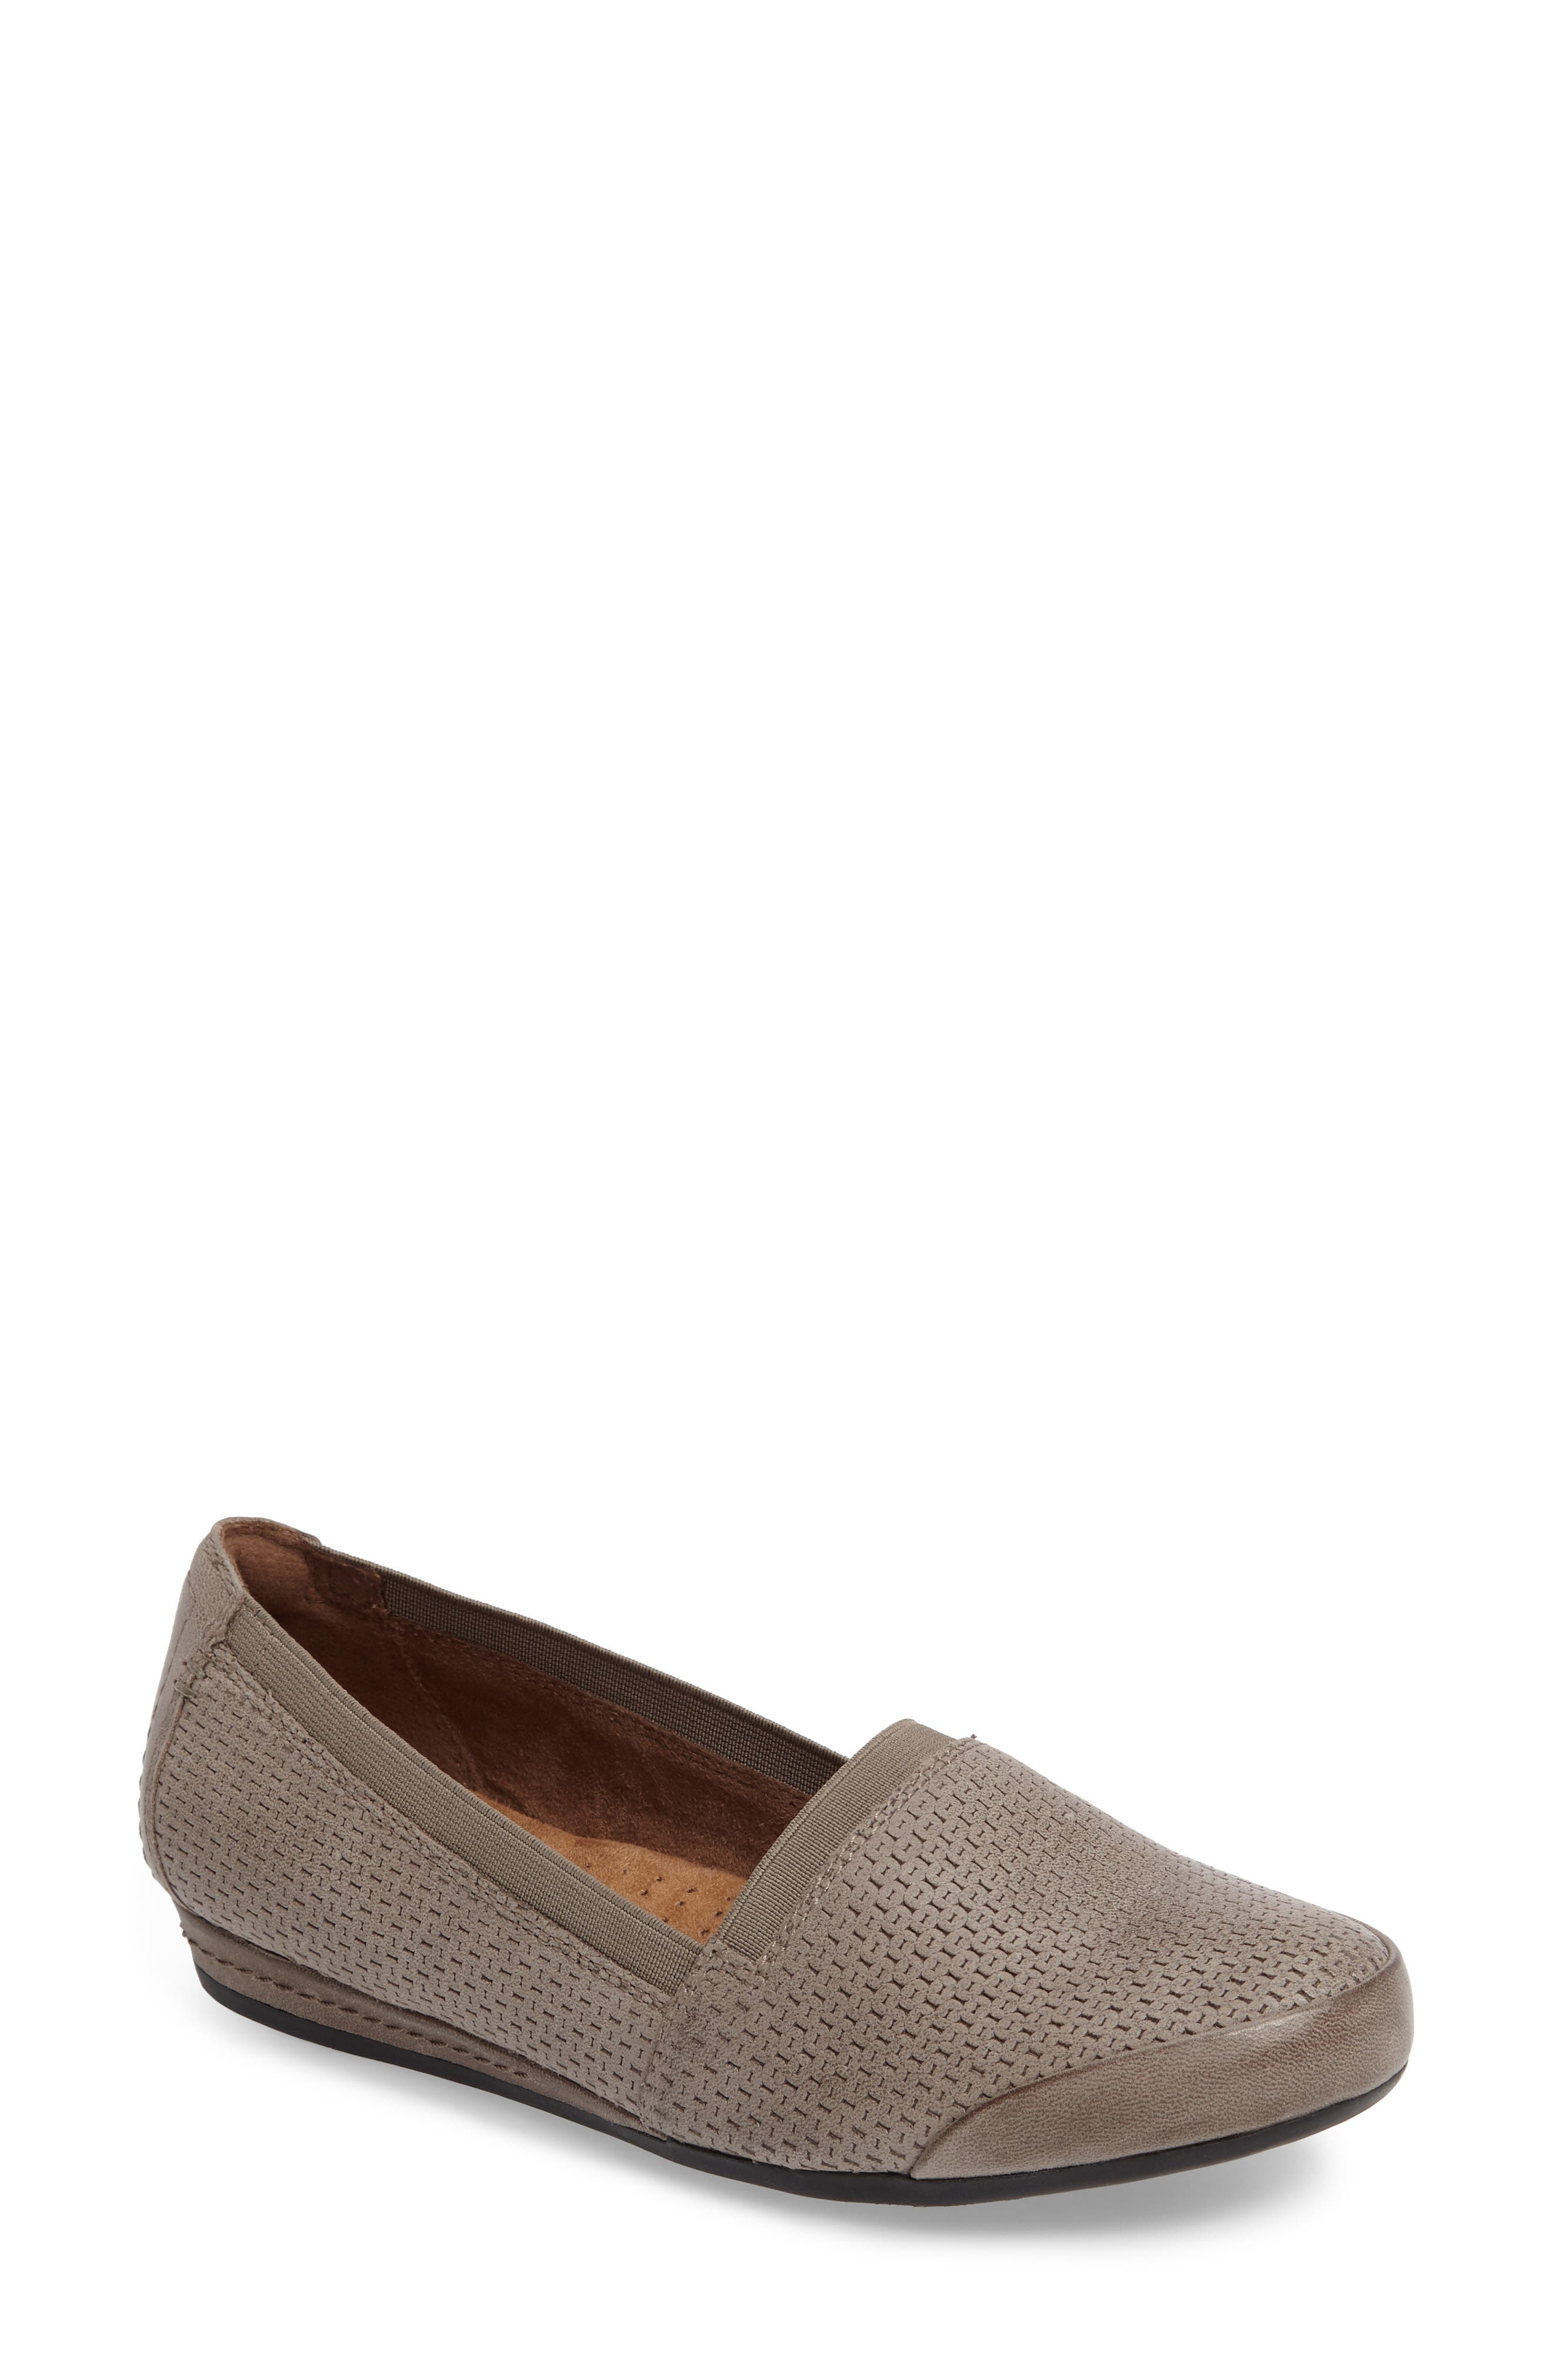 Alternate Image 1 Selected - Rockport Cobb Hill Galway Textured Flat (Women)